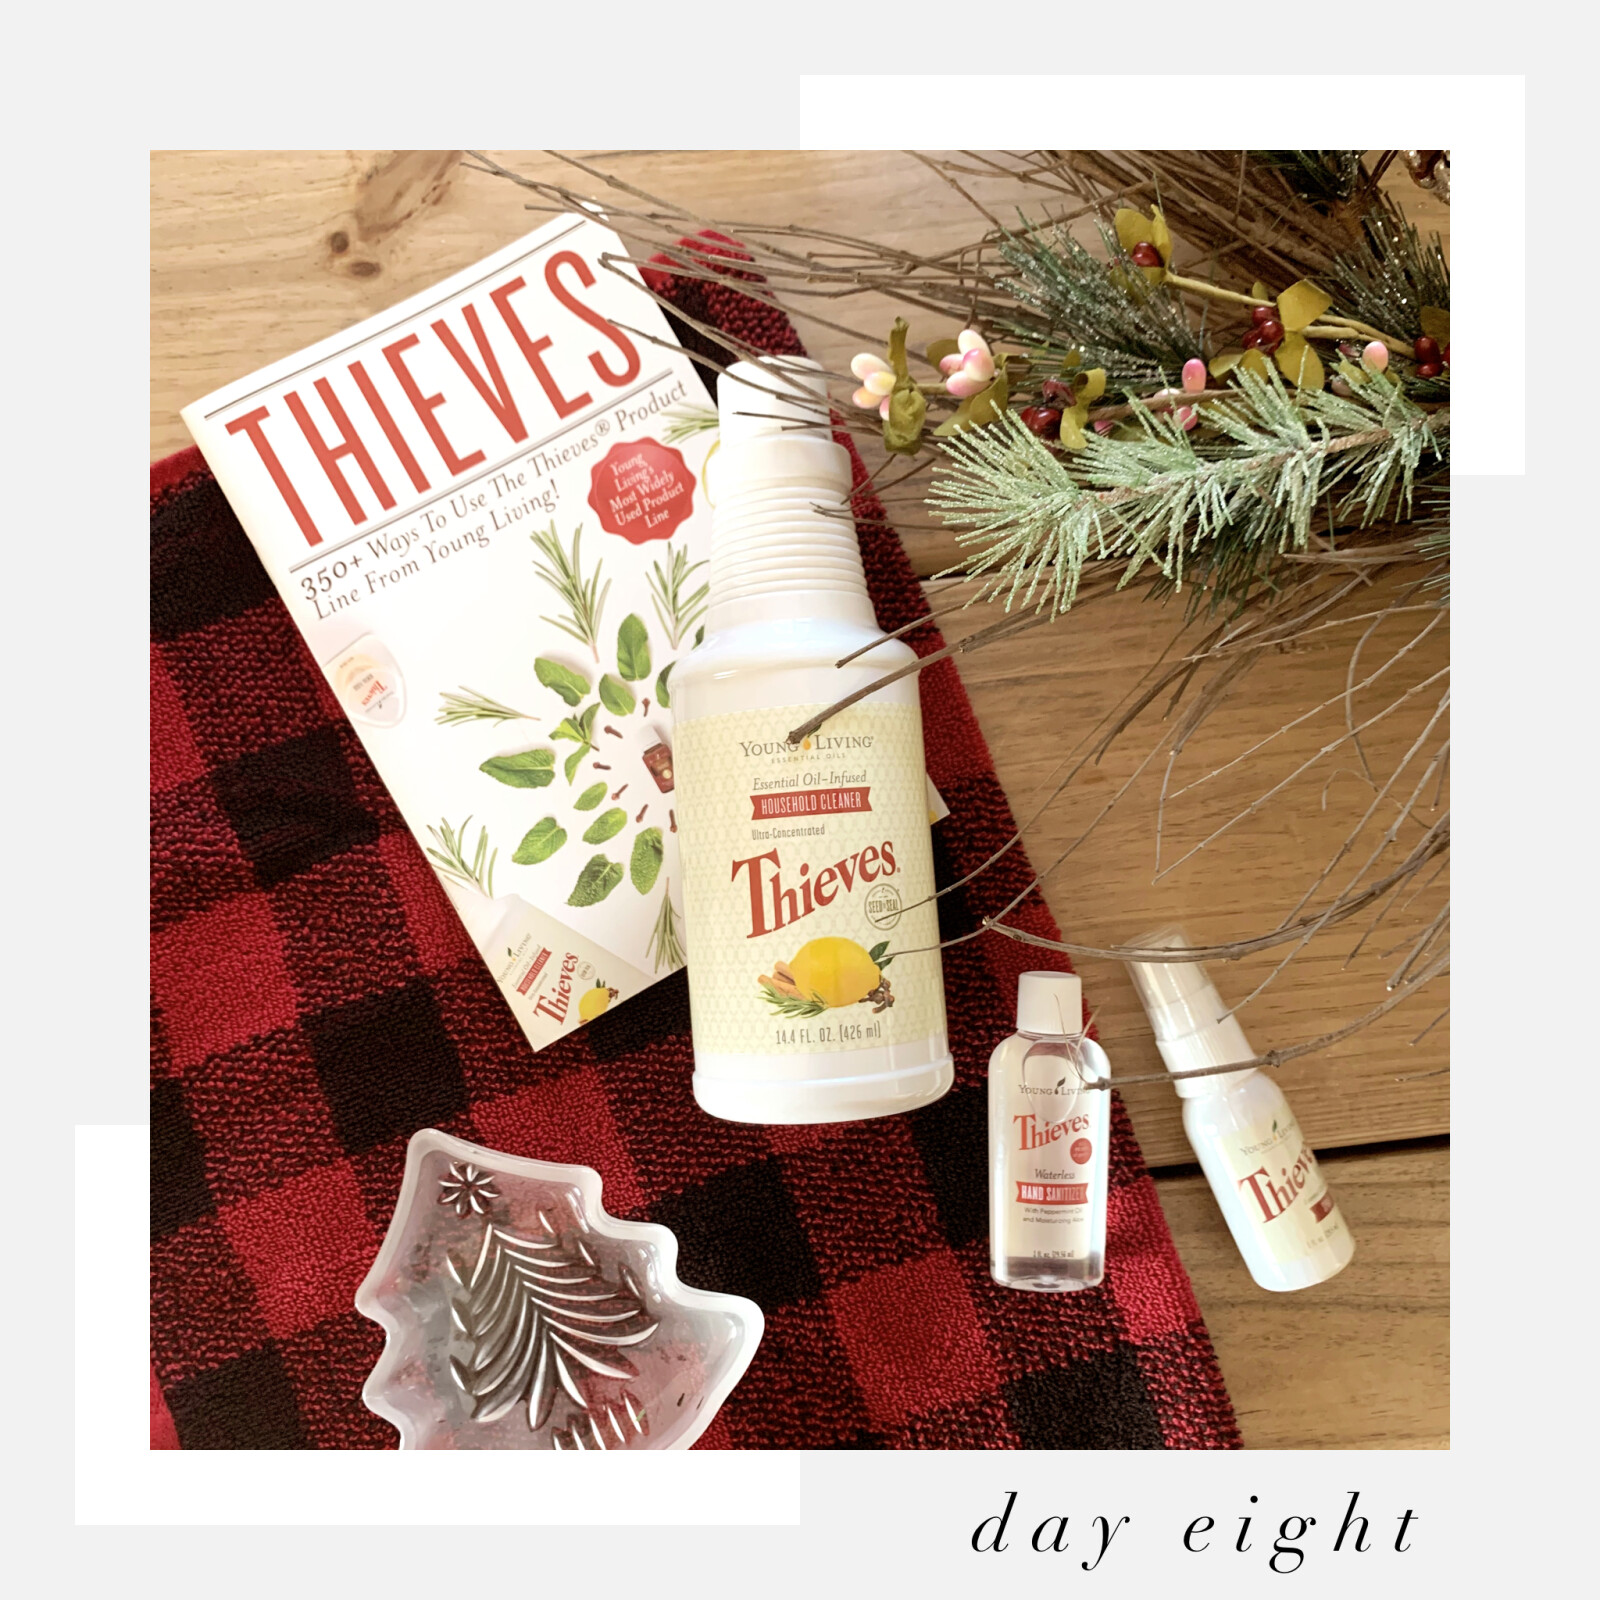 12 Days of Giveaways: Day 8 - All About Thieves